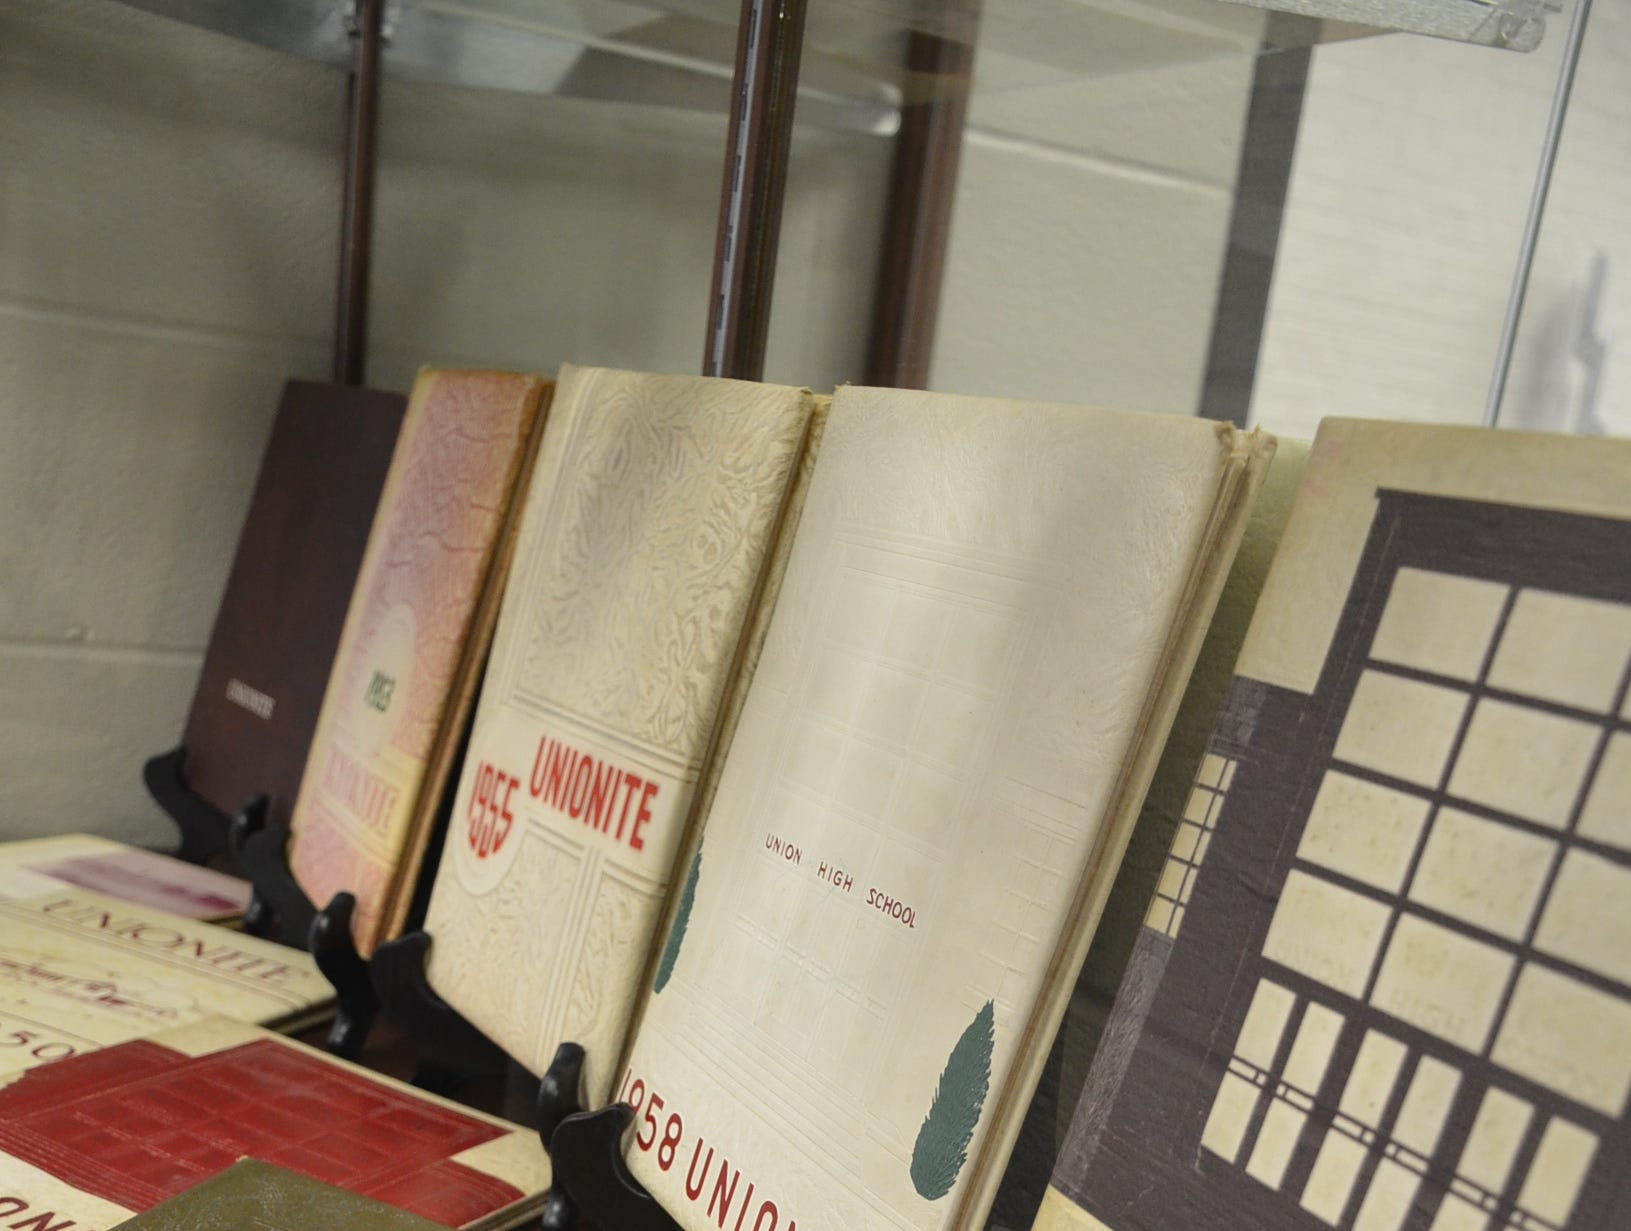 The Unionite books from the 1950s and 1960s are on display at the old Union High School in Gallatin.